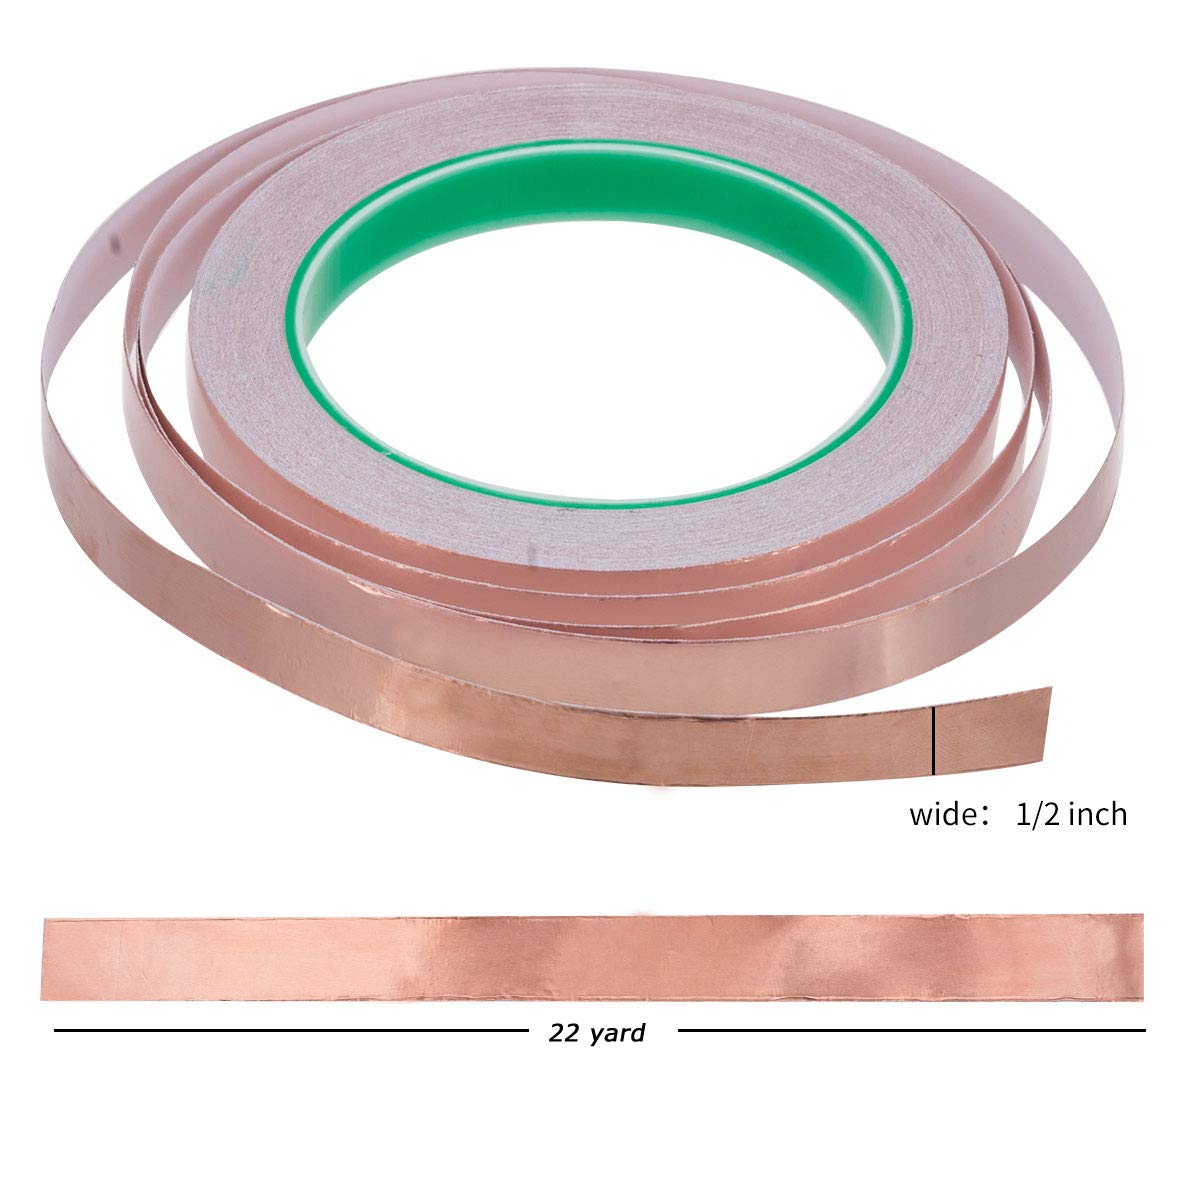 Stained Glass Paper Circuits 1//4inch X 22yards Vasdoo Copper Foil Tape with Conductive Adhesive for EMI Shielding Grounding Electrical Repairs